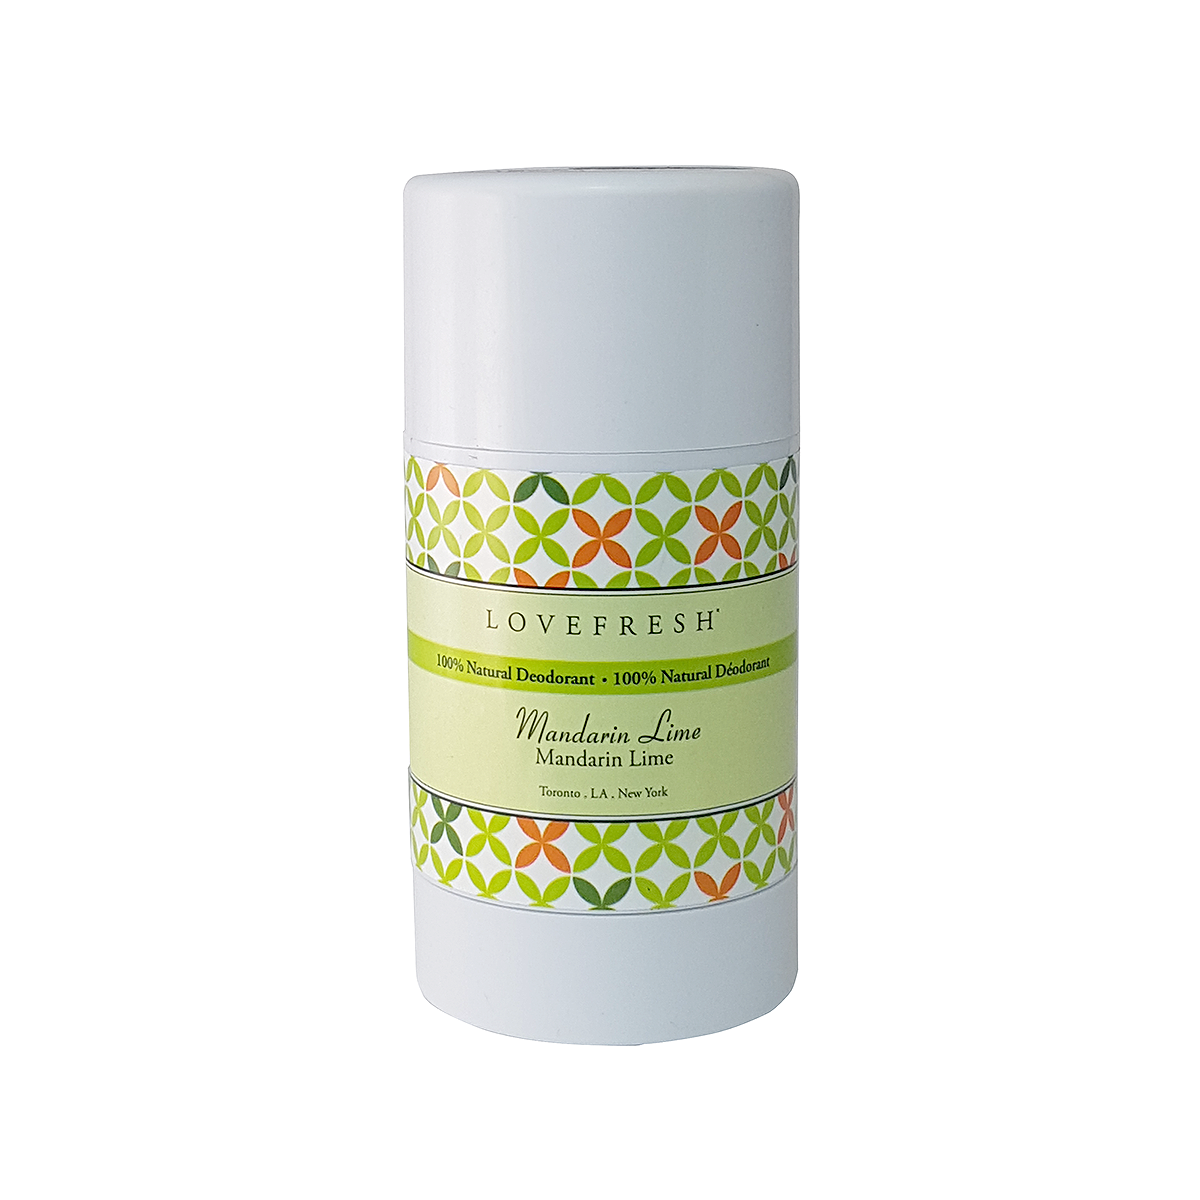 Mandarin Lime  Natural Deodorant  Baking Soda Free  Products